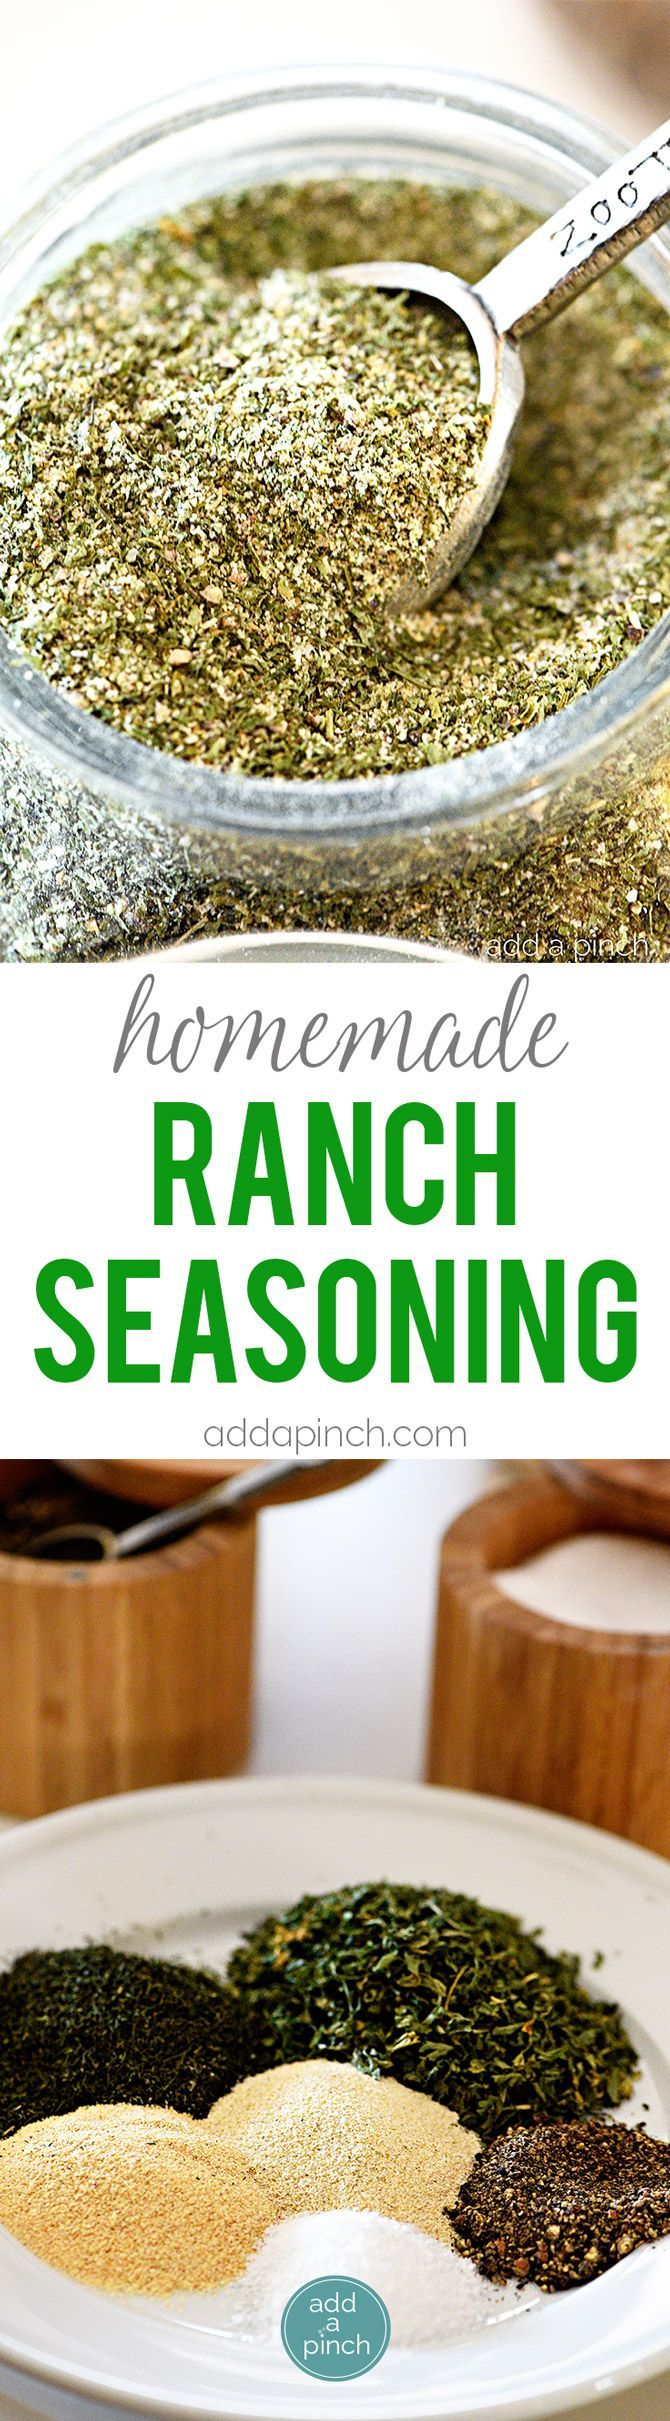 Homemade Ranch Seasoning Mix – Homemade ranch seasoning makes a great seasoning to keep on hand for ranch dressing, dips, chips, and more! // addapinch.com